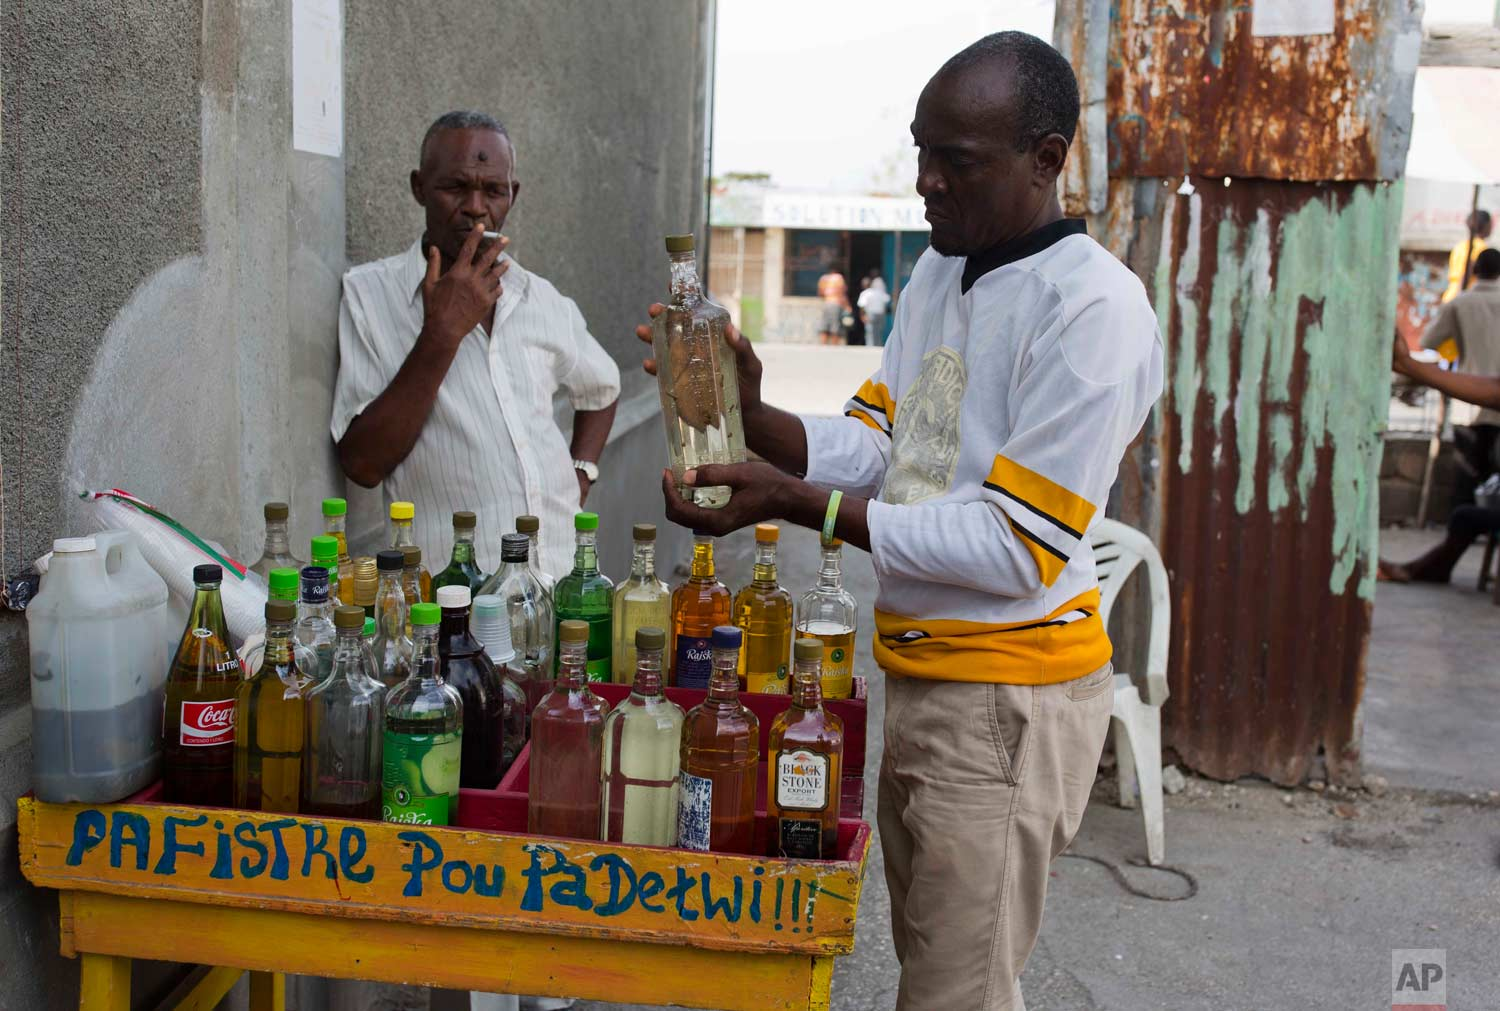 Eddy Lecty shakes a bottle of clairin, a sugar-based alcoholic drink, after adding clove spice to it, as his father Wilfrid Yves Nader smokes nearby and they wait for customers in the Cite Soleil area in Port-au-Prince, Haiti, Tuesday, July 11, 2017. The father-son business has been selling different flavors of clairin at this spot for almost 20 years, which has turned into a meeting place locals coined The Citizens Club. (AP Photo/Dieu Nalio Chery)